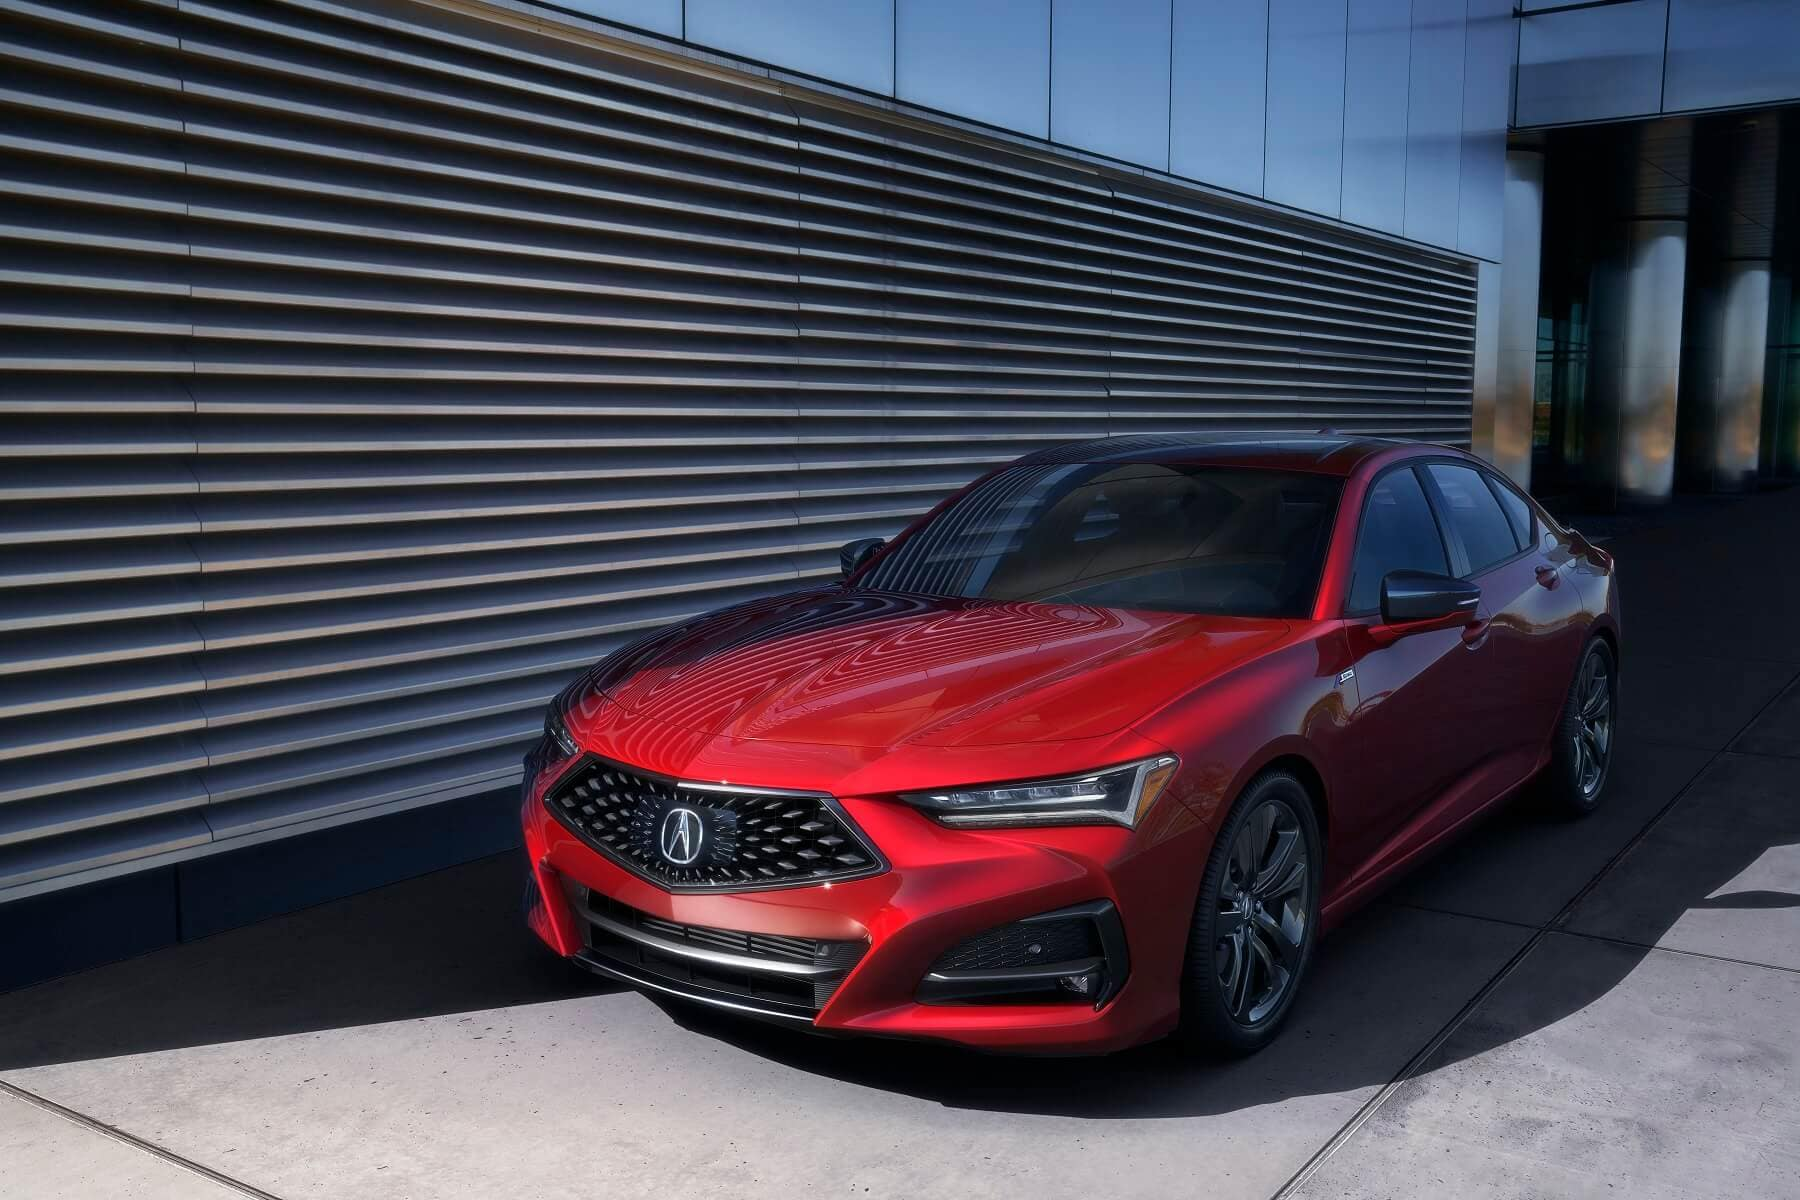 2021 Acura TLX A-Spec in Red